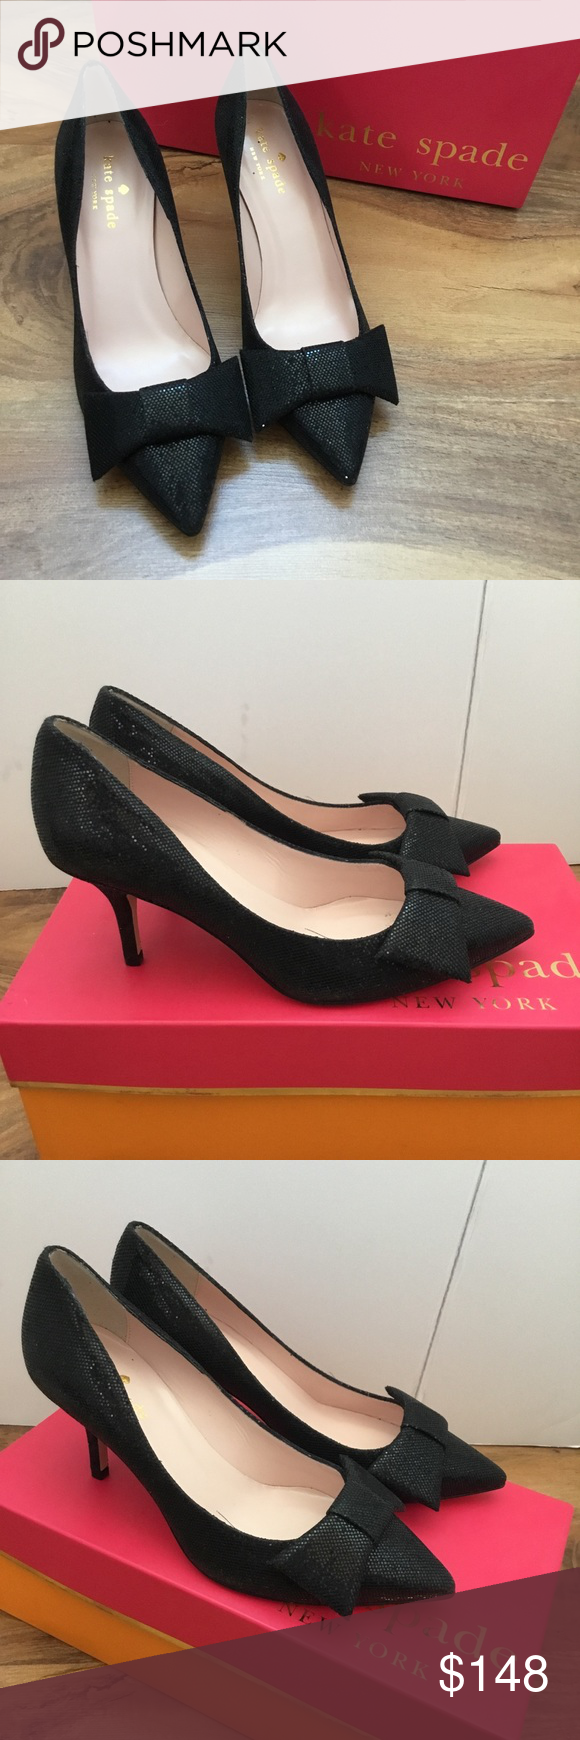 Kate Spade Black High Heel Pointed Toe Pumps Bow Black High Heels Pointed Toe Pumps Kate Spade Black